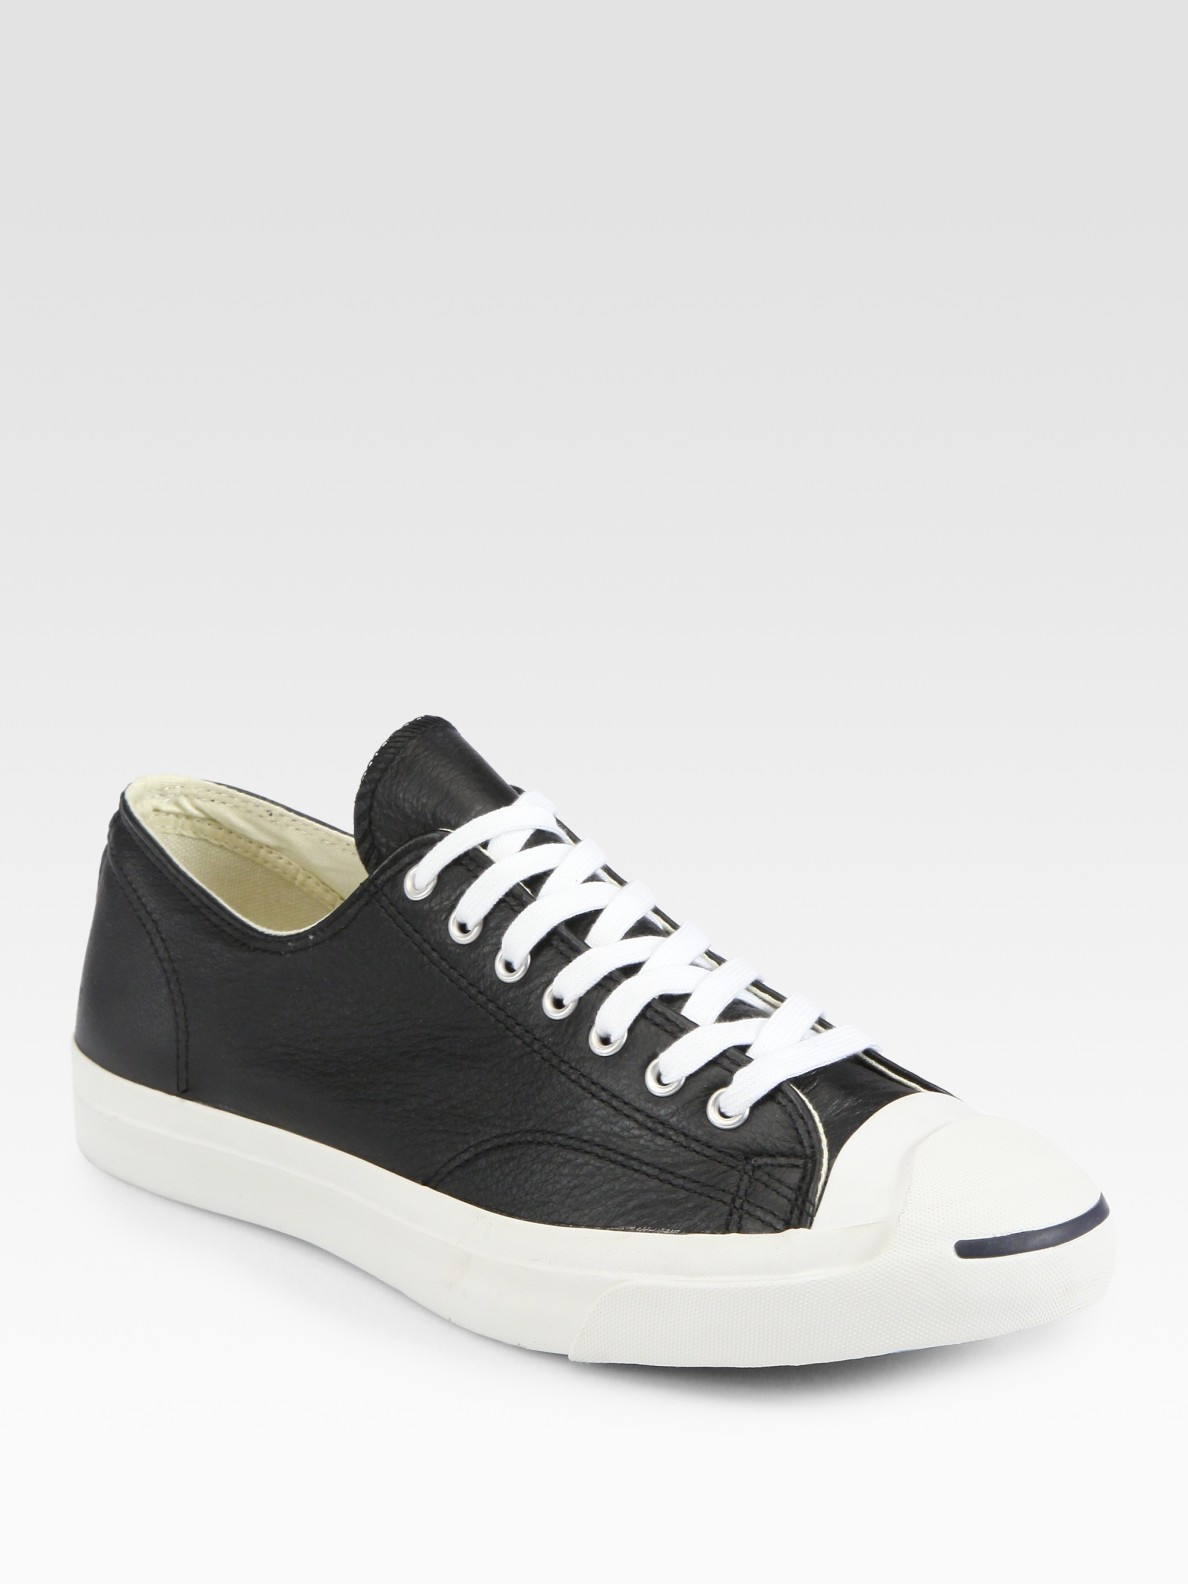 1eac426c119e Lyst - Converse Jack Purcell Leather Oxford Sneakers in Black for Men